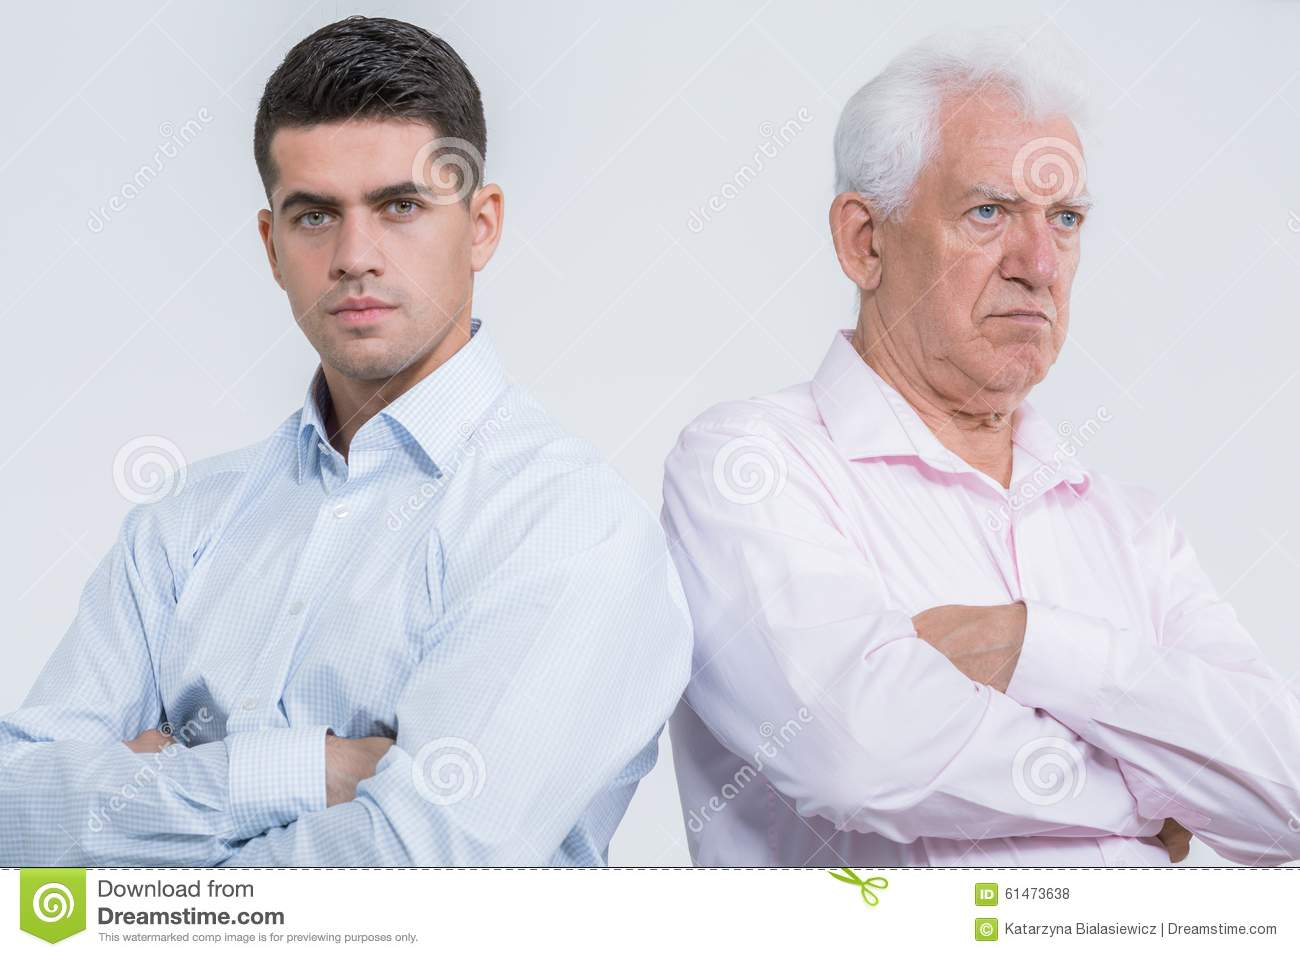 Image result for father and son in an argument